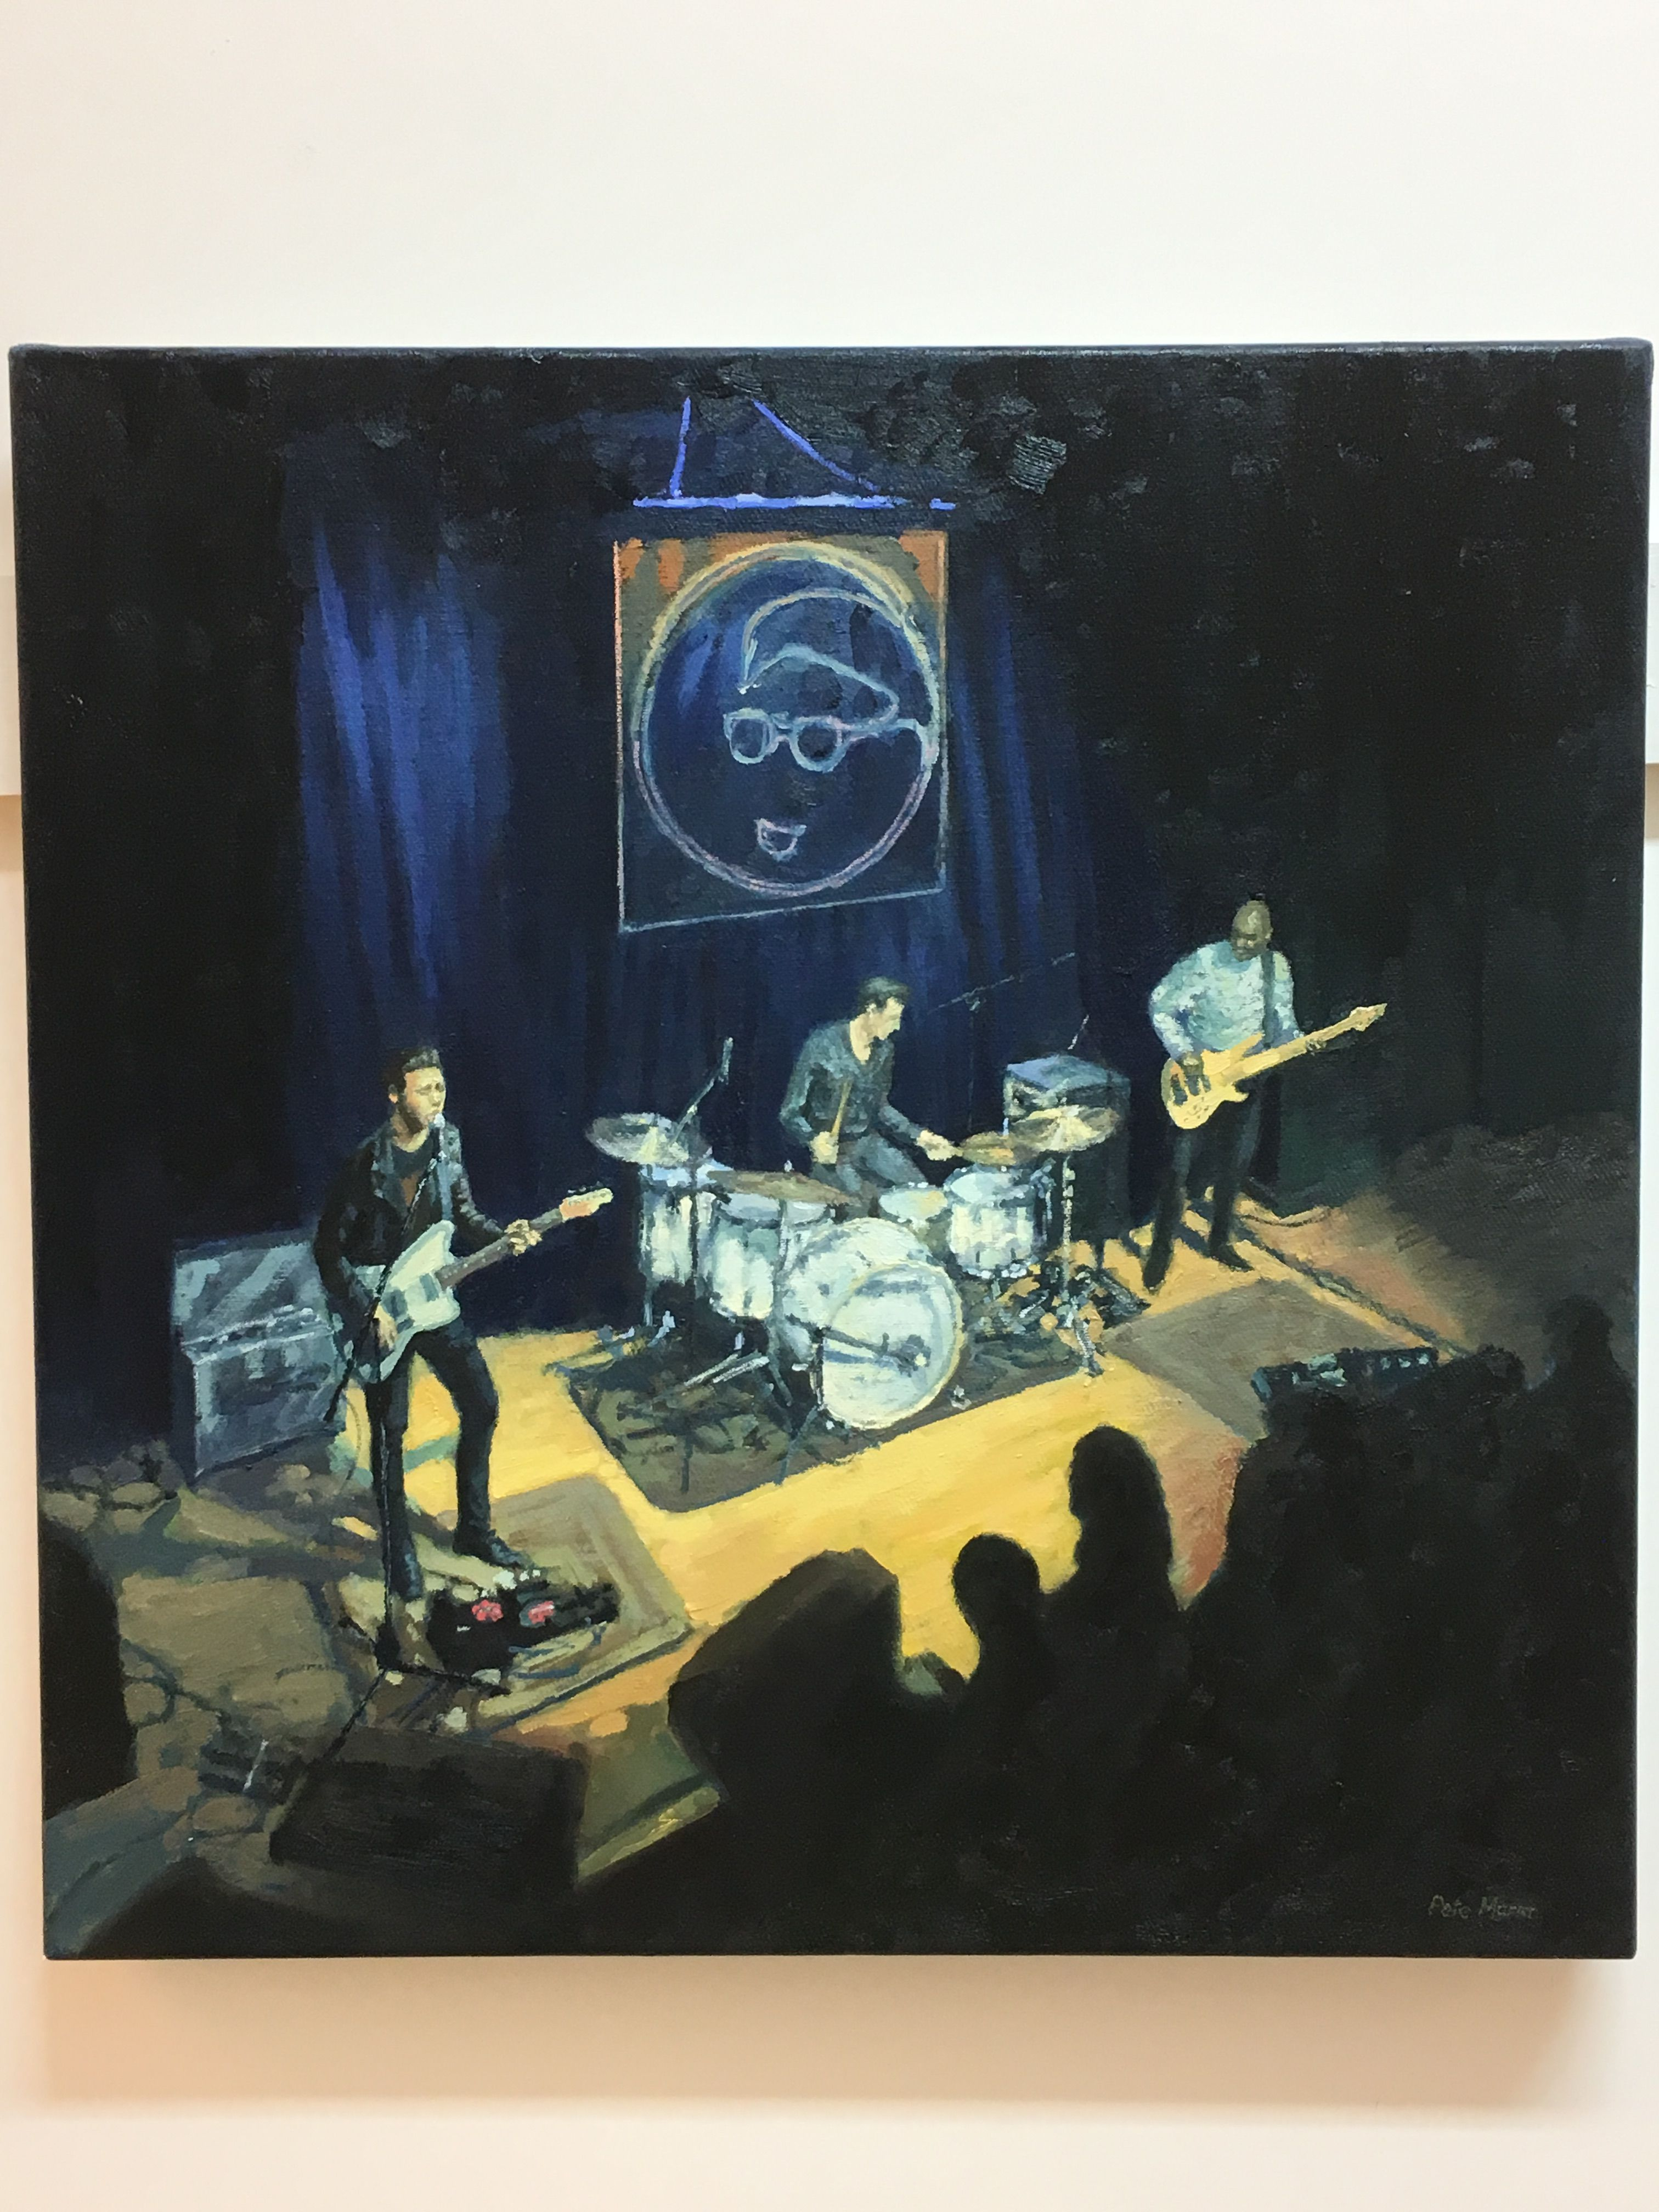 Laurence Jones at Band on the Wall, oil on canvas